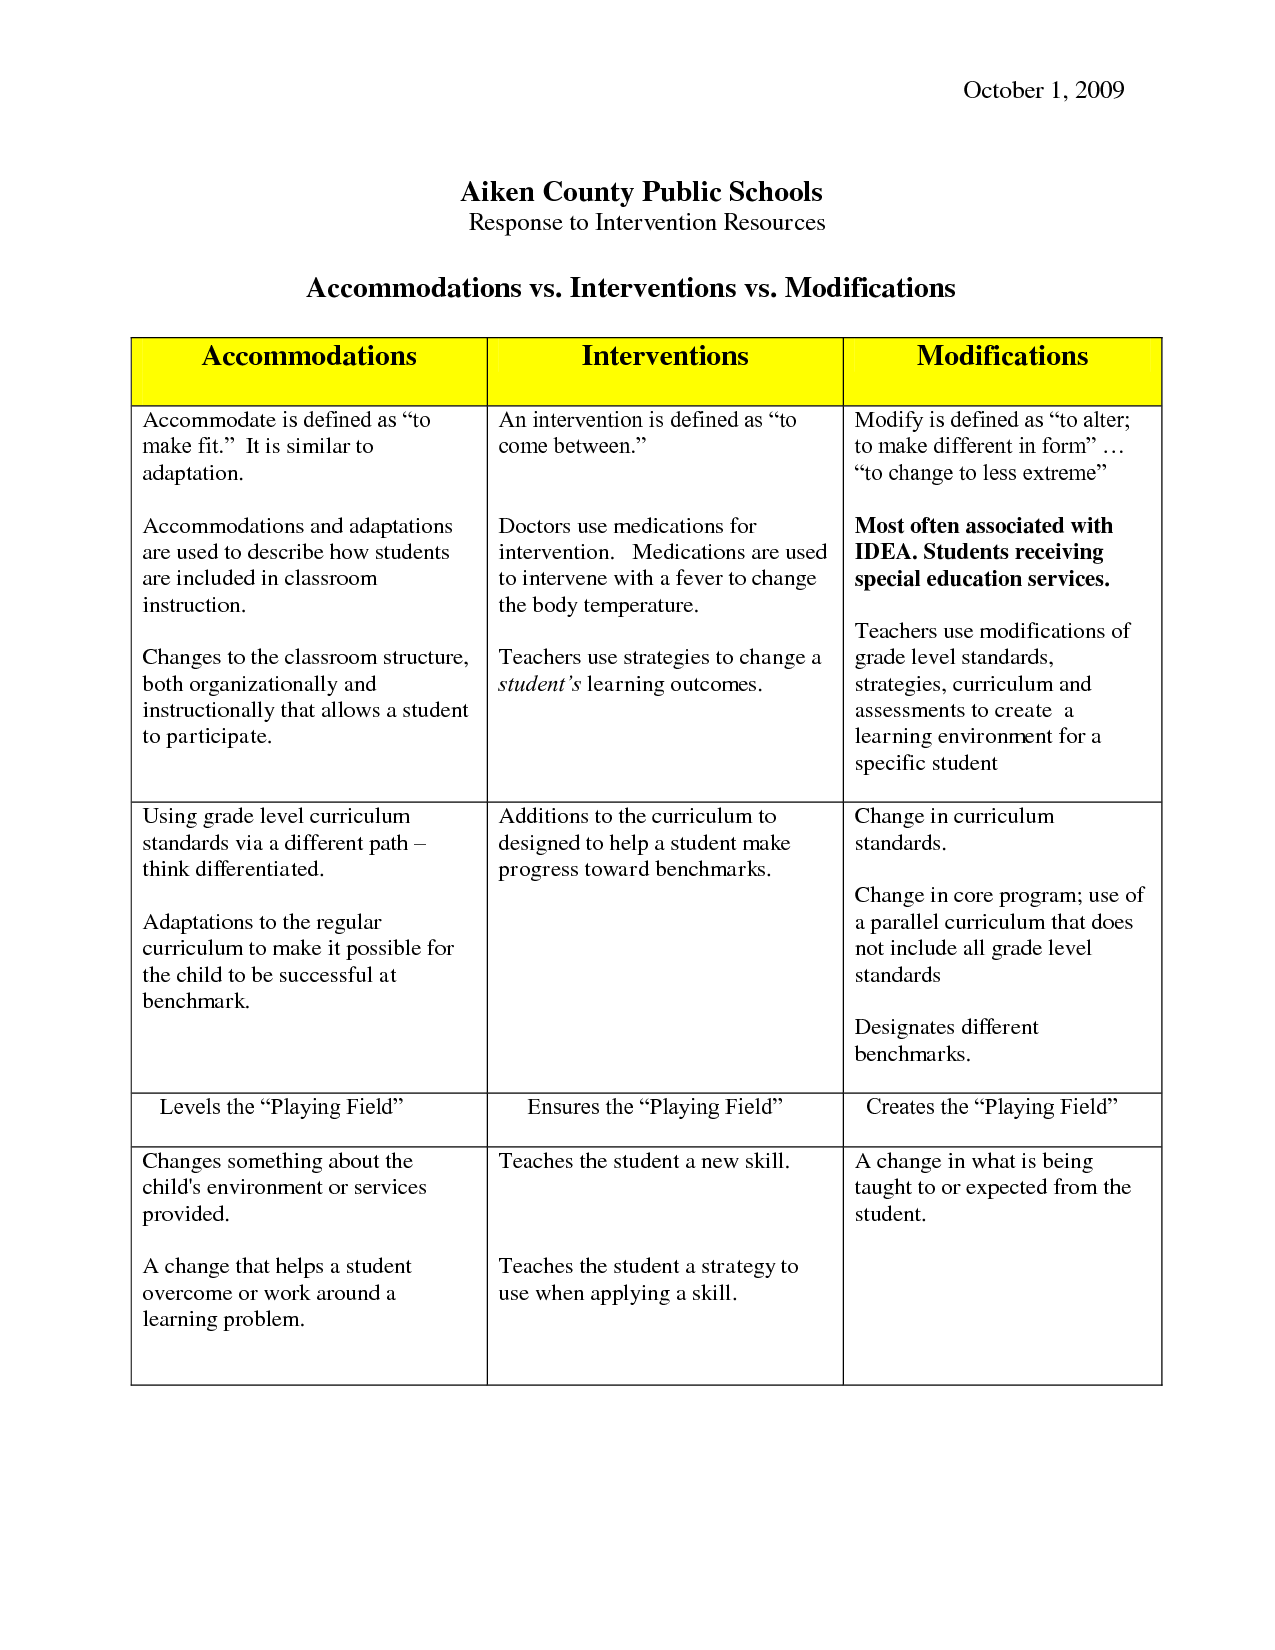 Special Education Accommodations Checklist